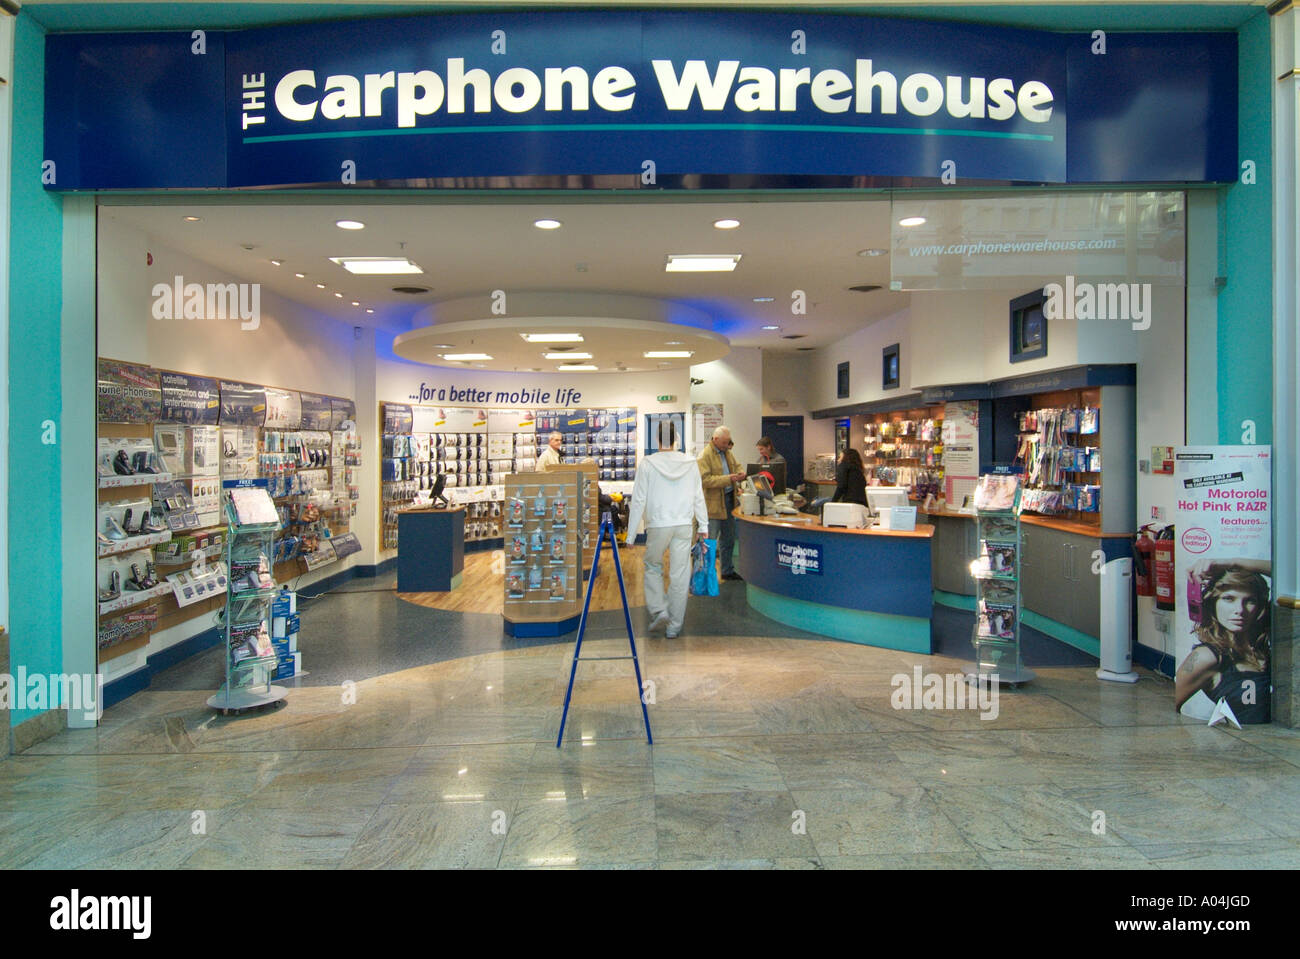 ae769a8dcd2 Carphone Warehouse store shop Trafford centre UK United Kingdom England  Europe GB Great Britain EU European